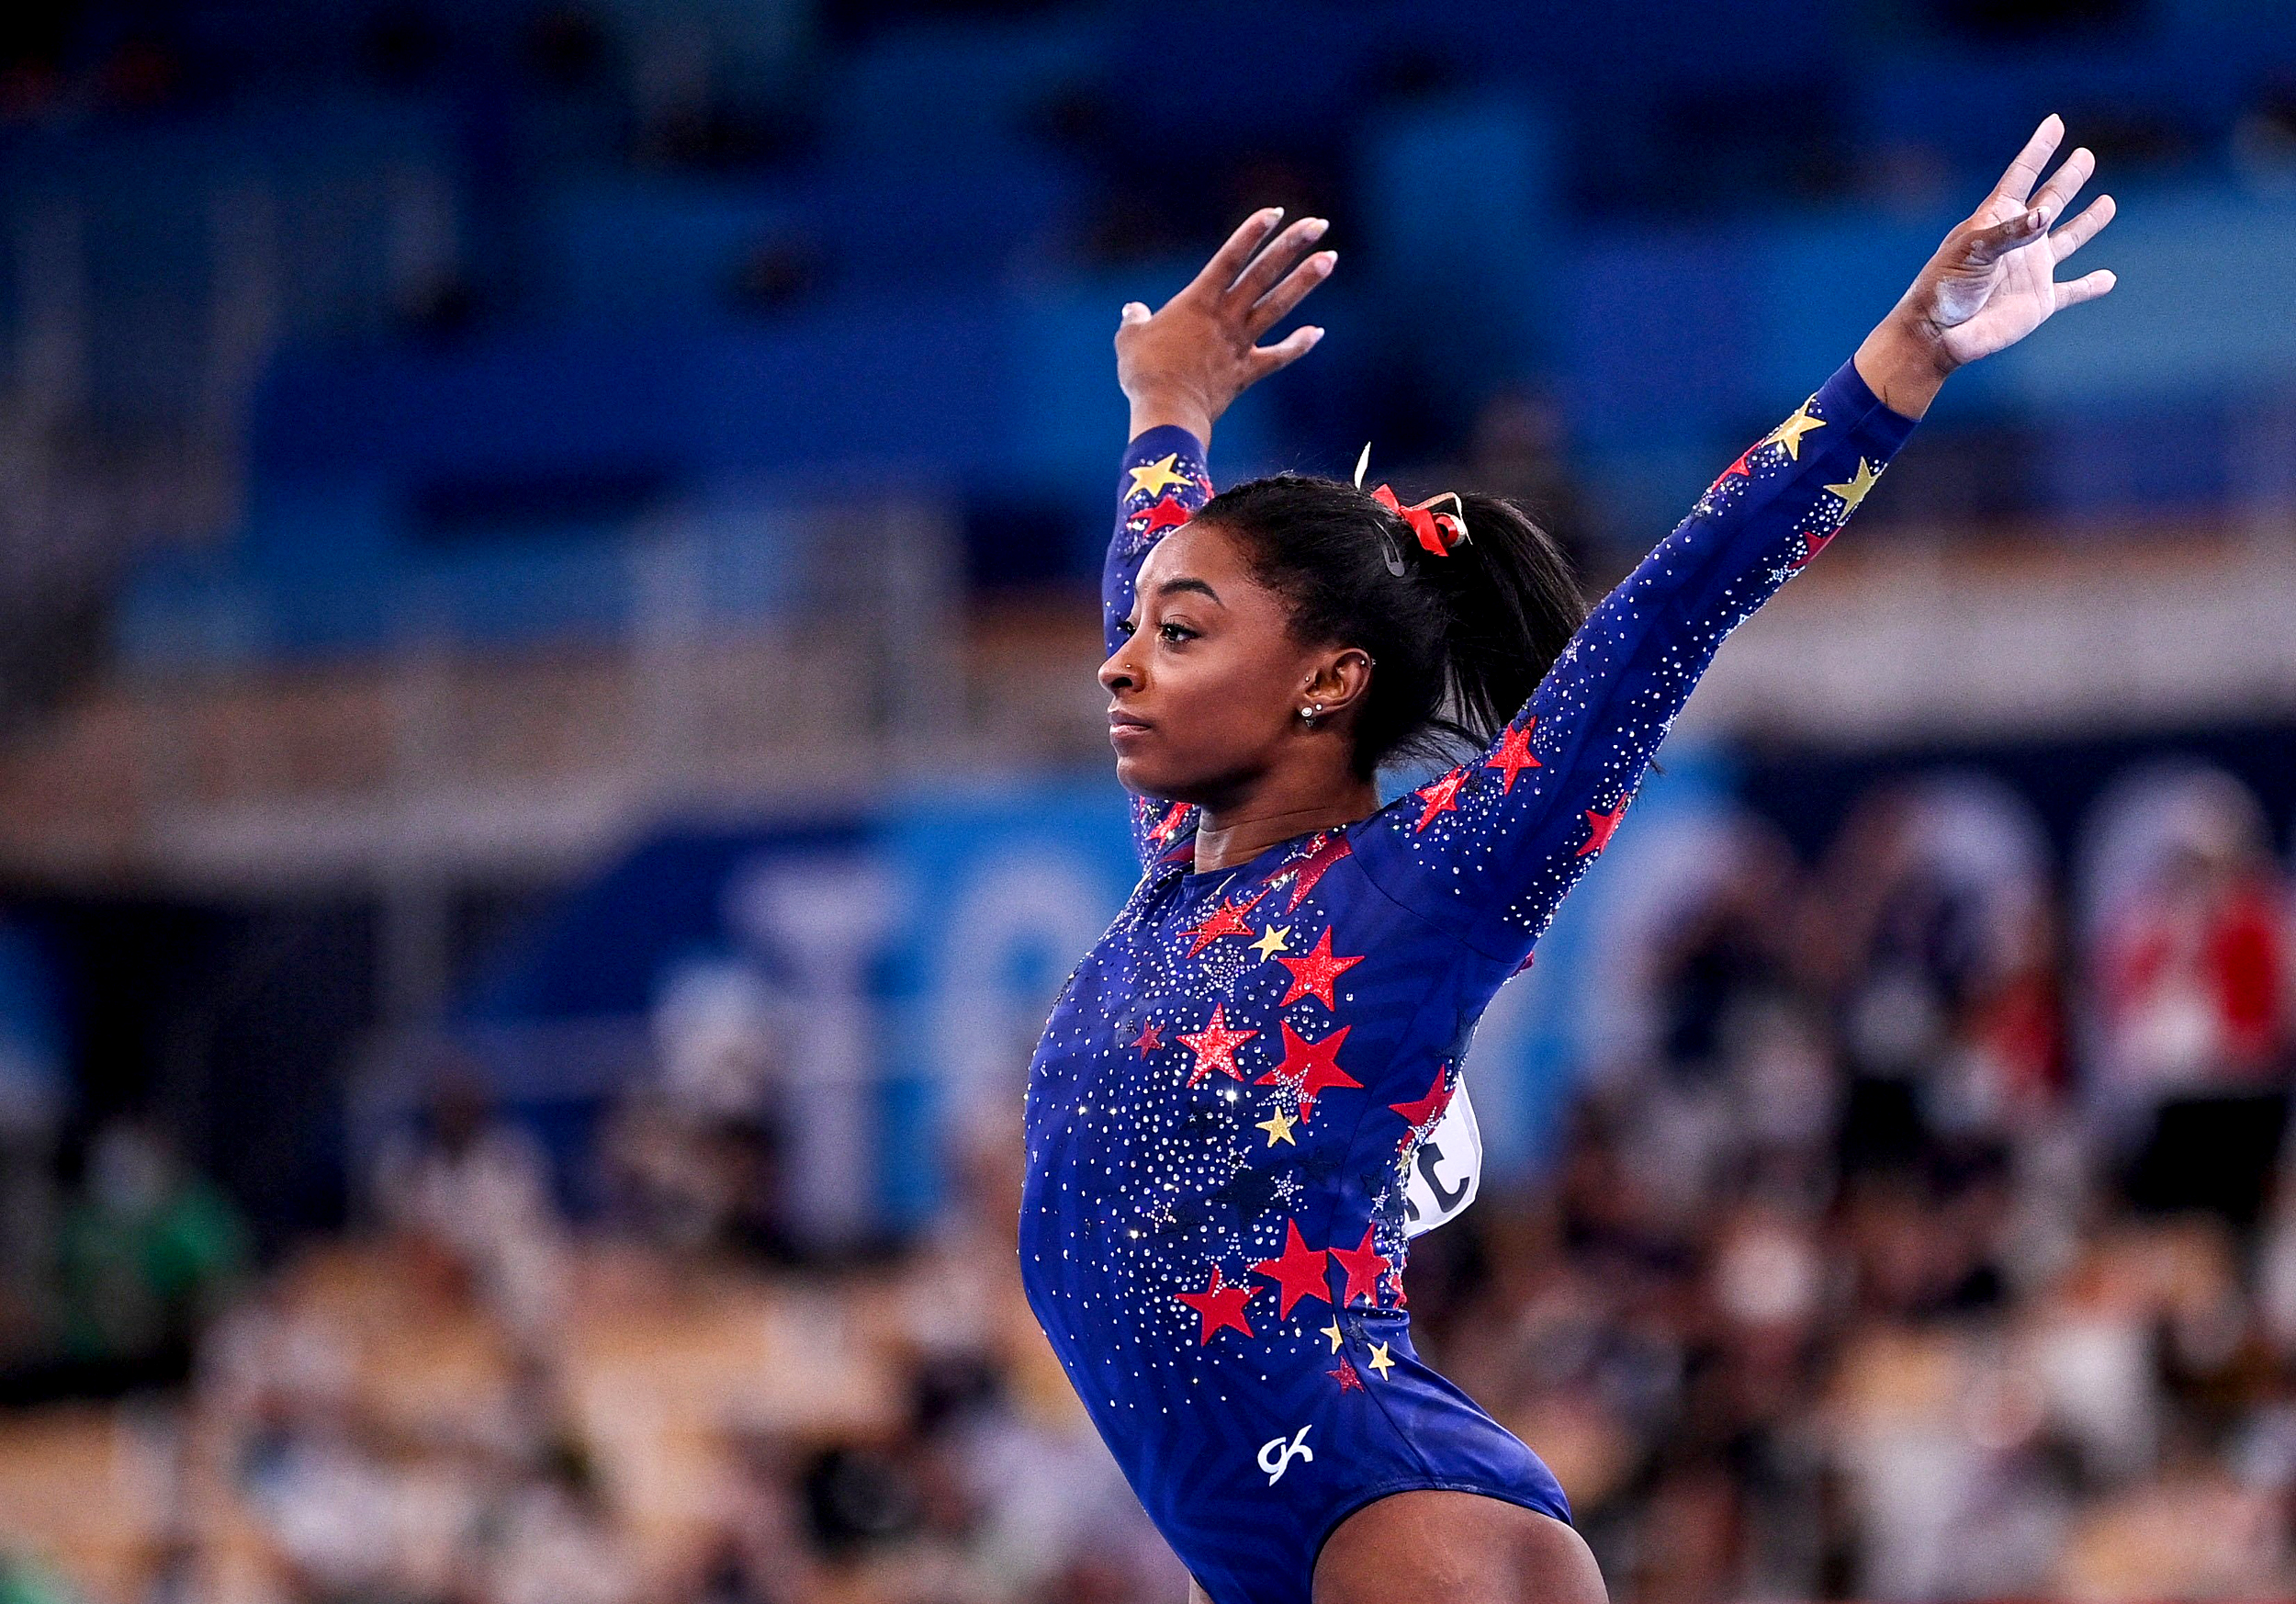 Why Simone Biles' withdrawing proves she's the GOAT